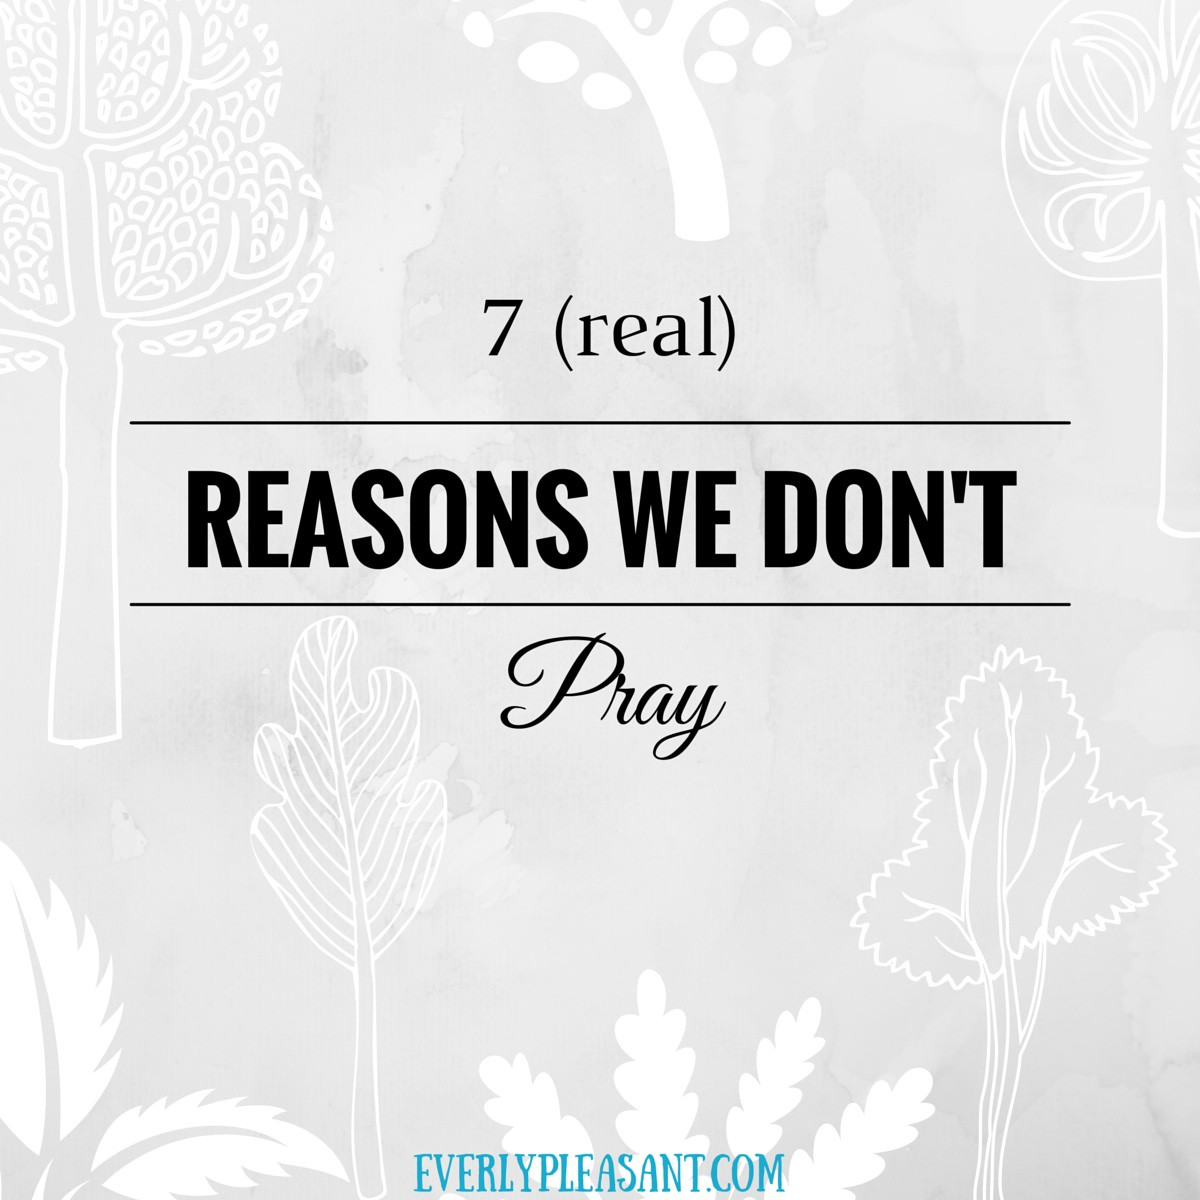 7 (real) reasons we don't pray (from everlypleasant.com)